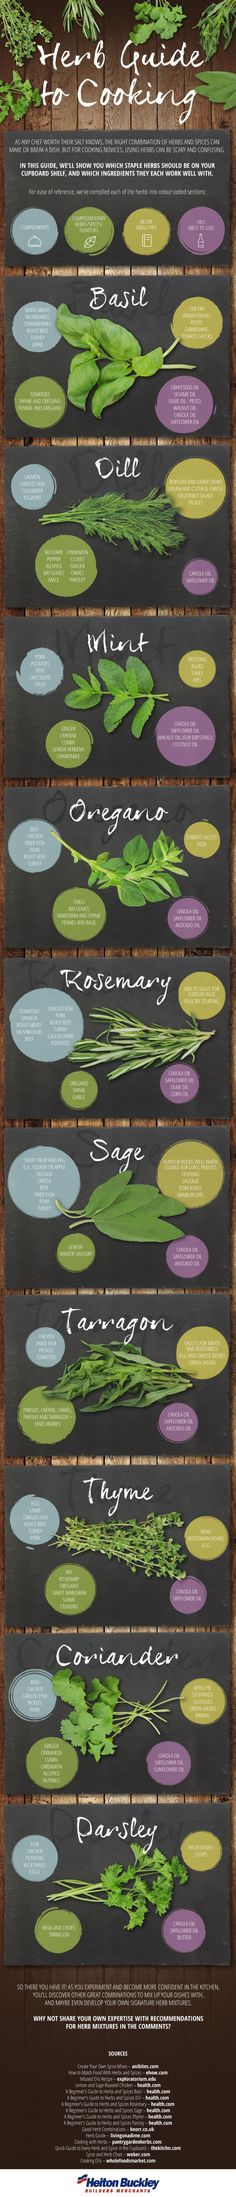 Herb Guide To Cooking Added by Emily Powers #Infographic #Herbs #Hierbas